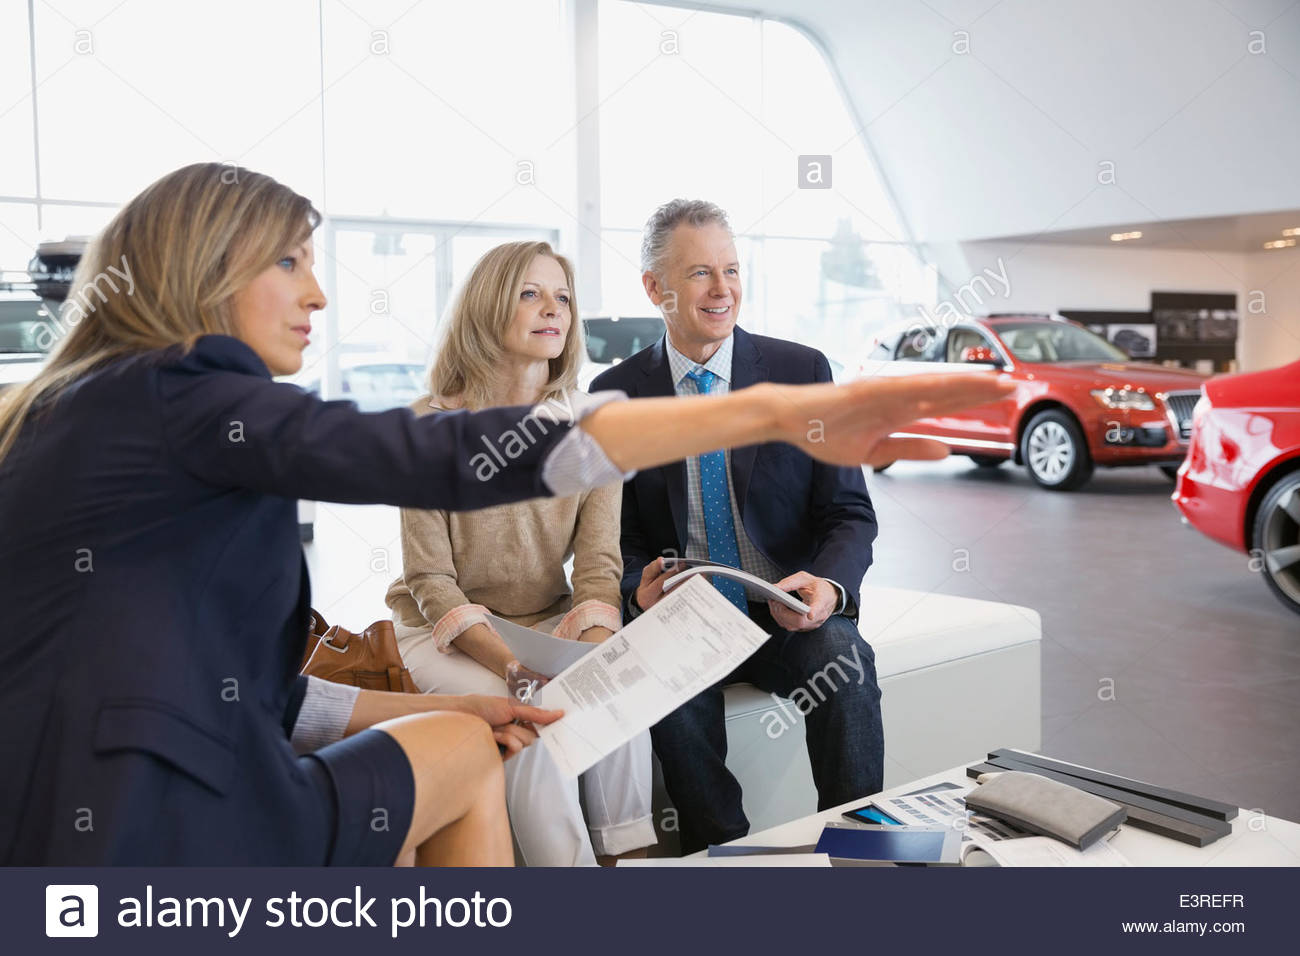 Saleswoman explaining to couple in car dealership showroom - Stock Image